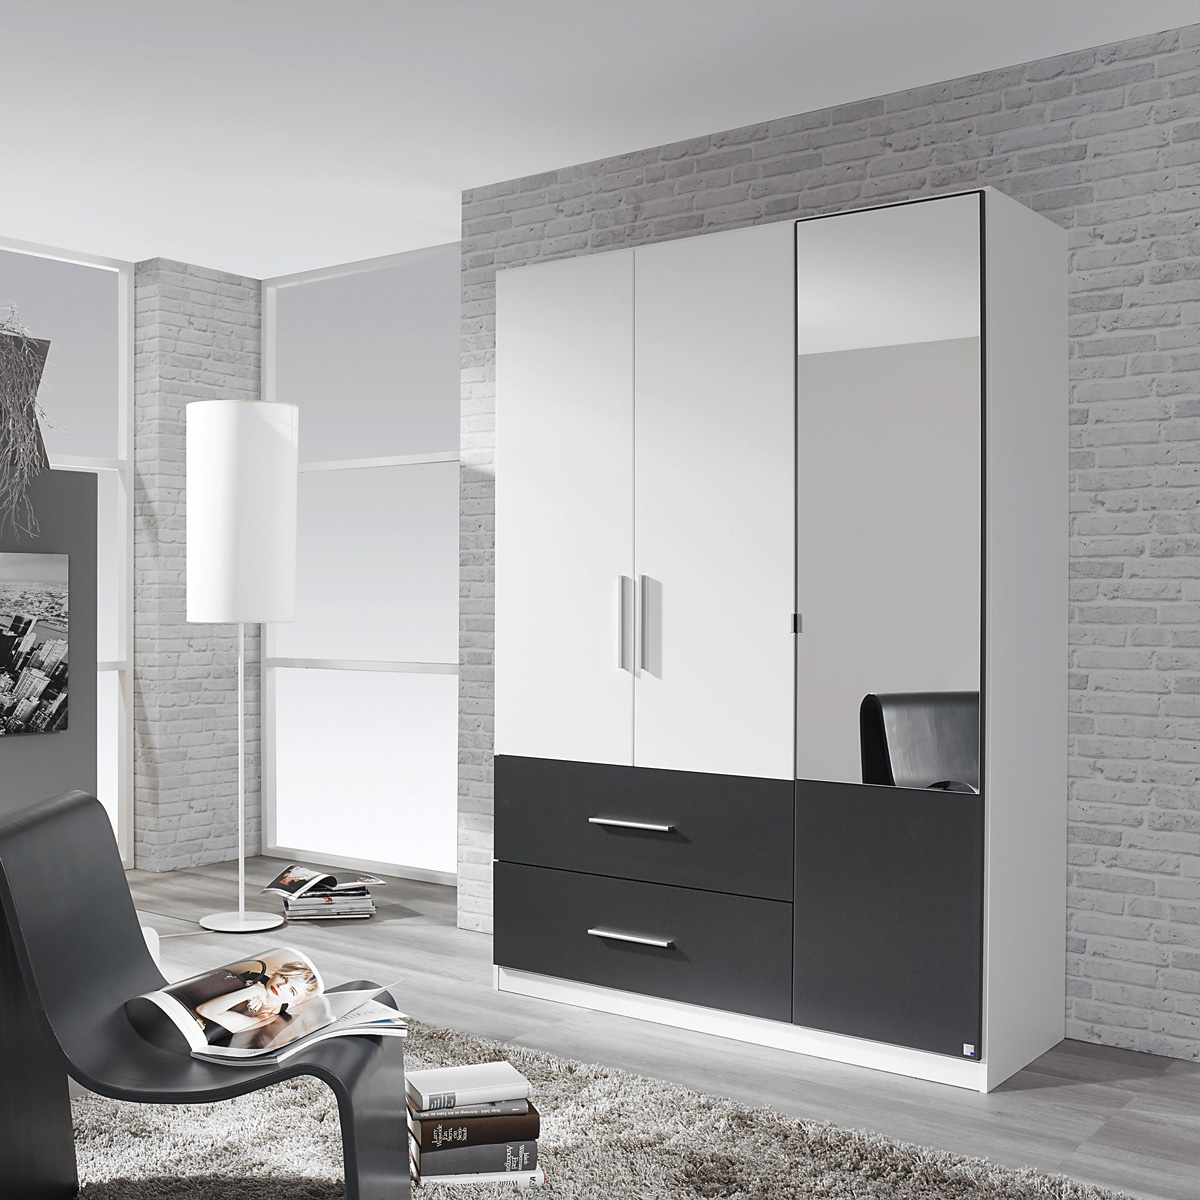 kleiderschrank alvor schrank f r schlafzimmer wei grau metallic spiegel 136 cm. Black Bedroom Furniture Sets. Home Design Ideas